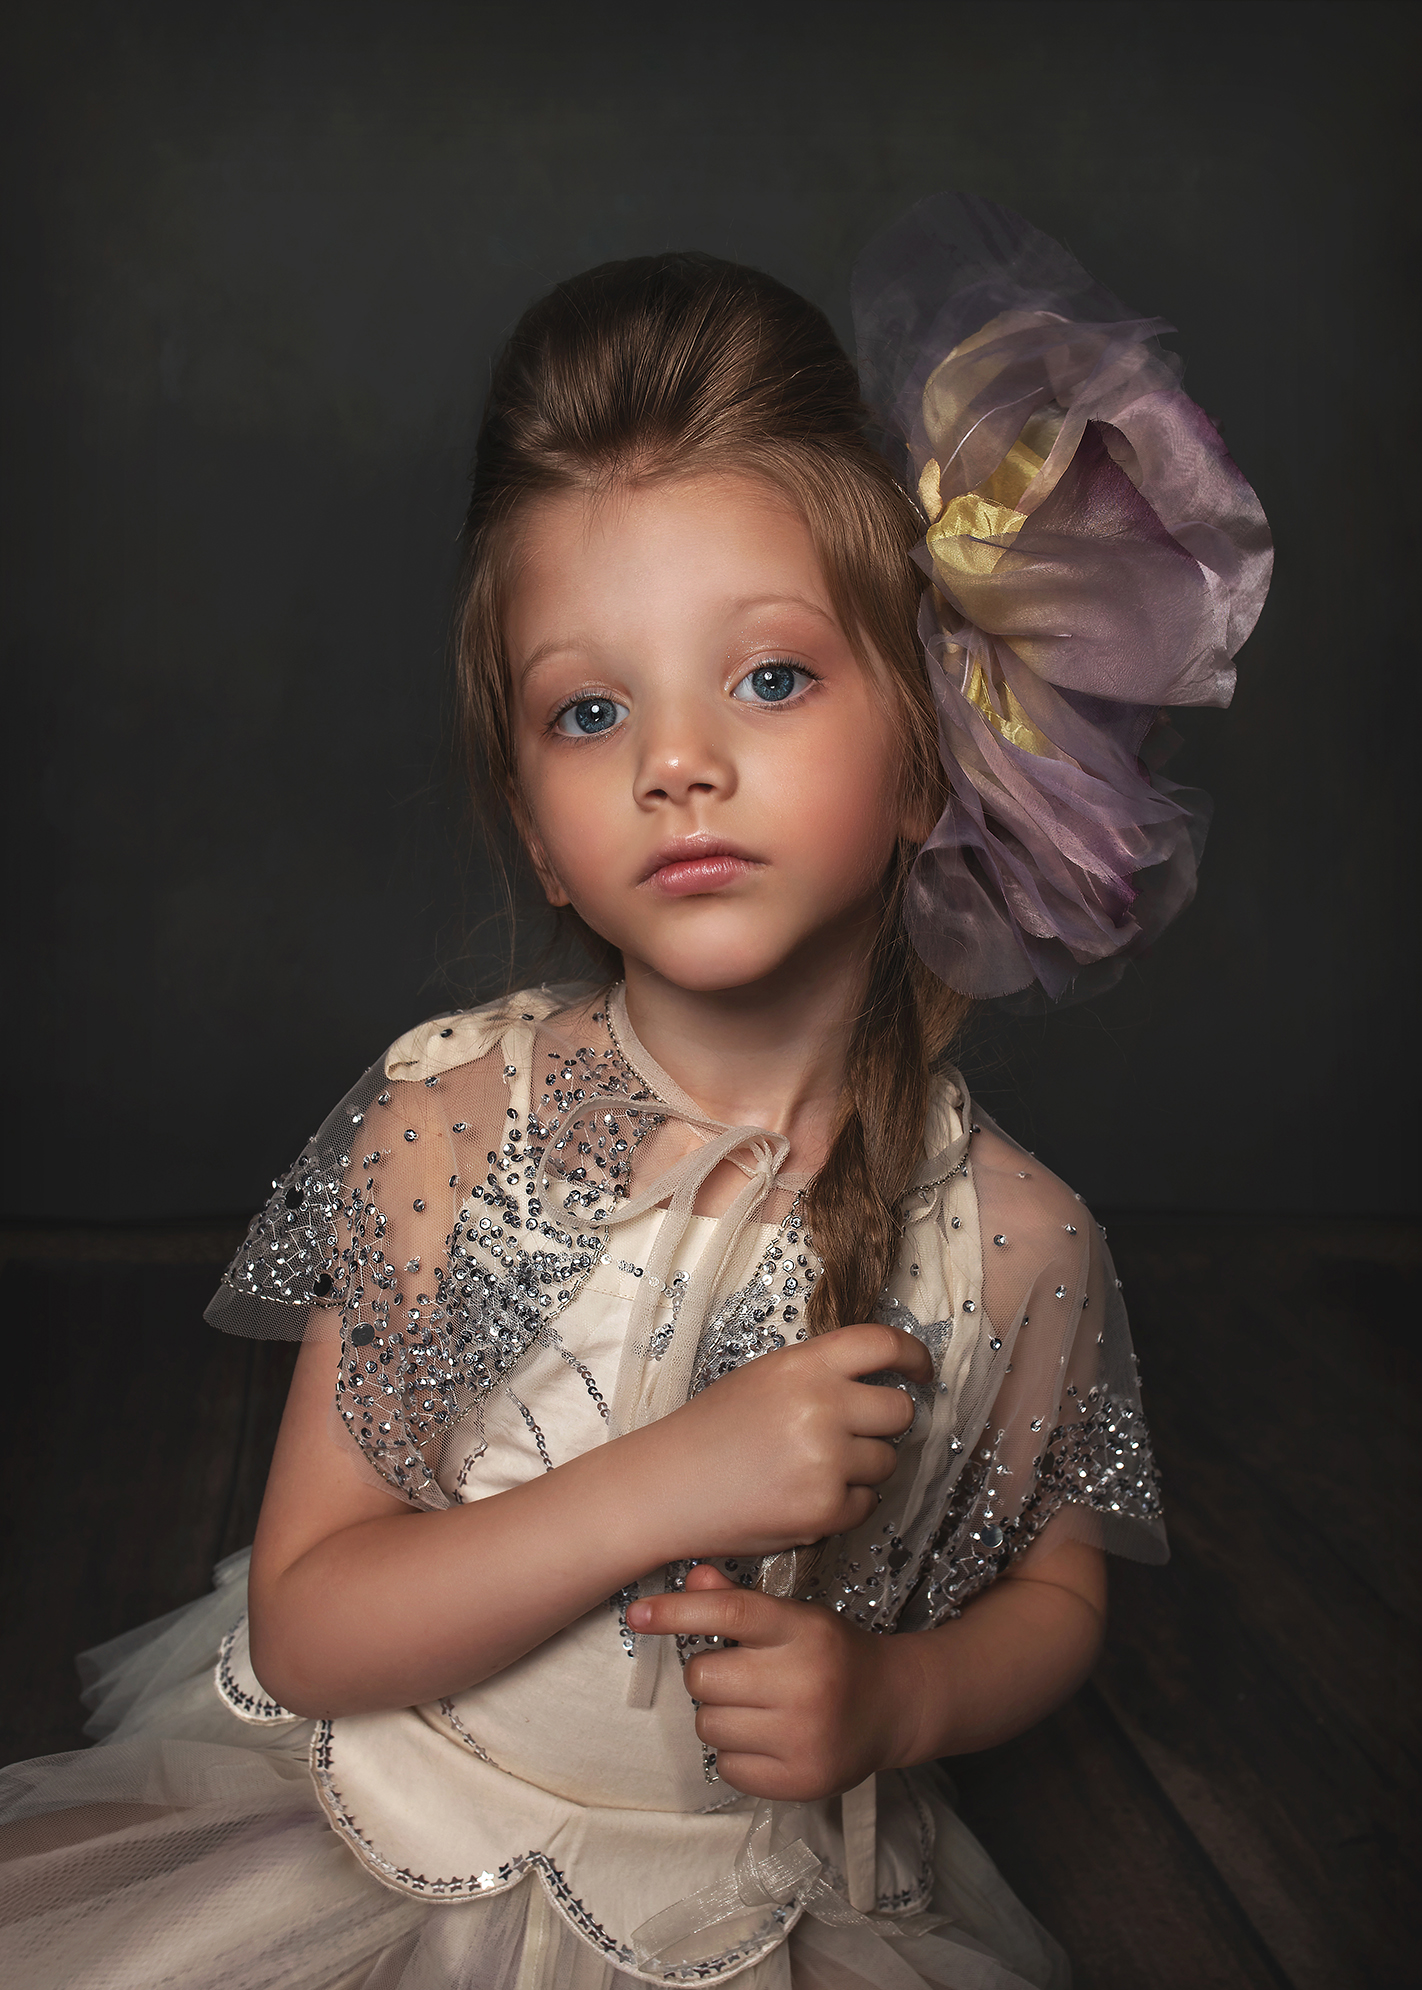 They are only little once - Only with portraits can you hold on to them forever